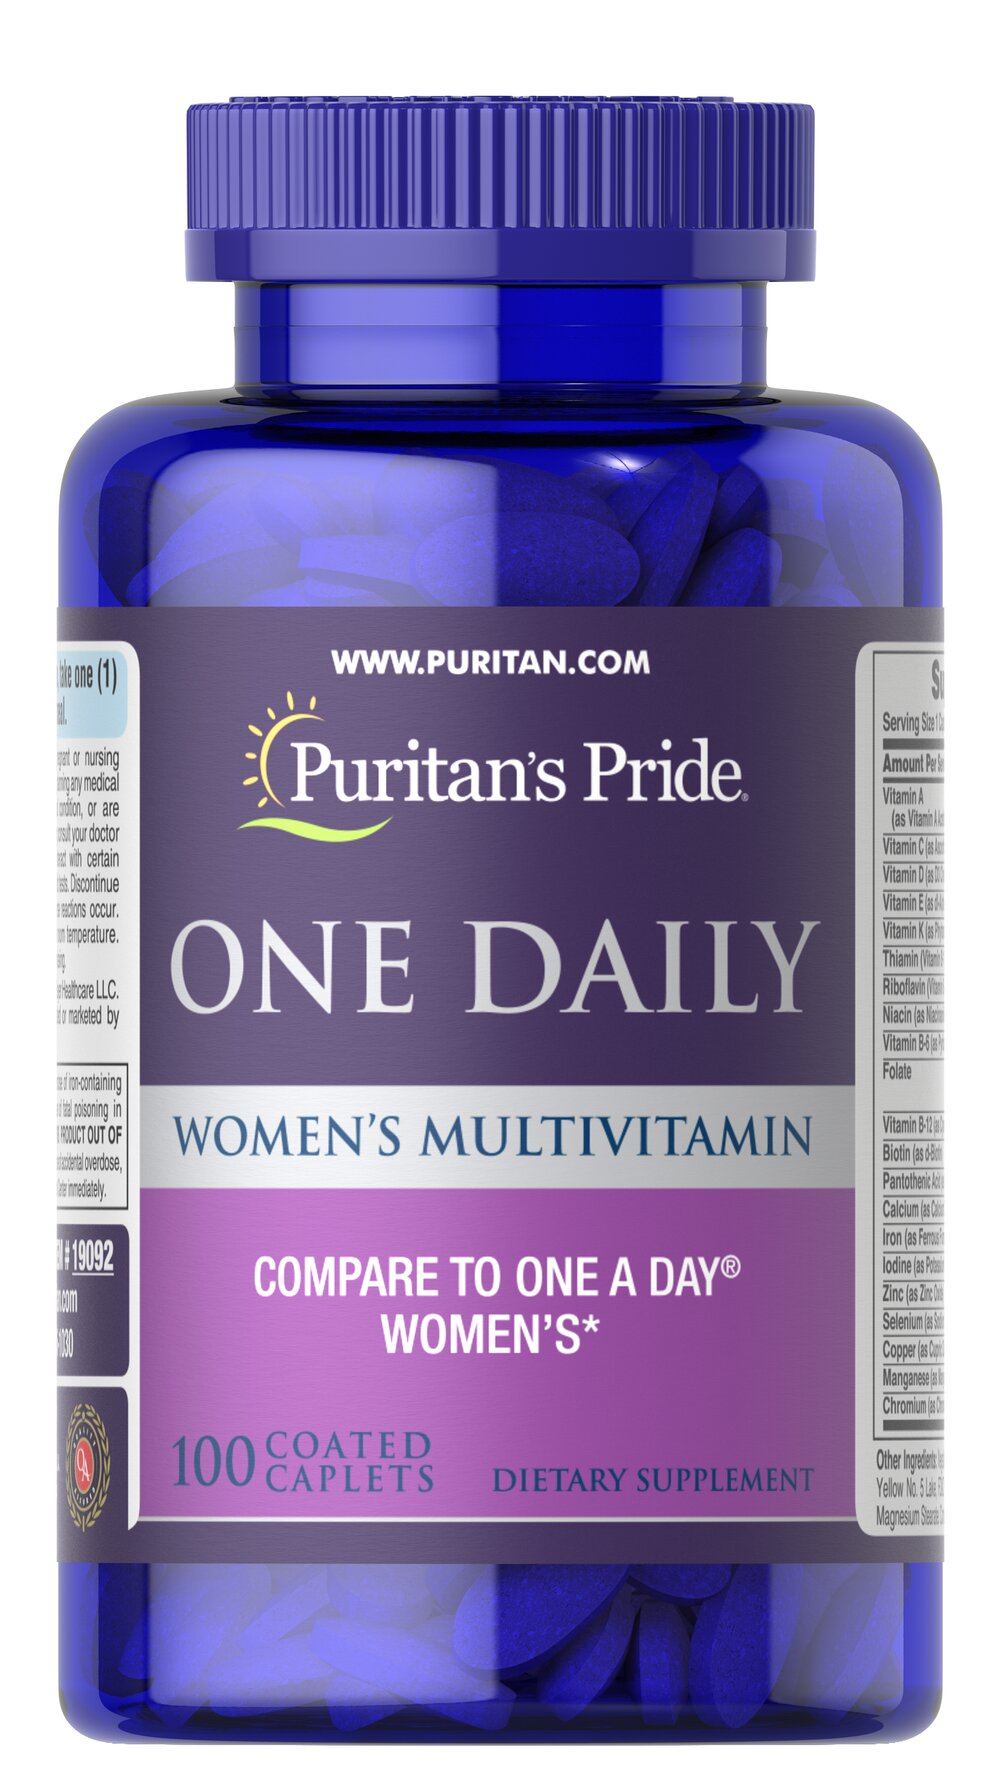 Women's One Daily Multivitamins <p><b>A Convenient Vitamin for the Woman on the Go!</b></p>  <p>Once-daily formula provides a valuable array of vitamins and minerals**</p> <p>Includes 1000 IU of Vitamin D to promote bone and immune system health**</p> <p>Provides 100% of the Daily Value of 5 different B-Vitamins to aid with energy metabolism and nervous system health**</p> 100 Caplets  $12.99